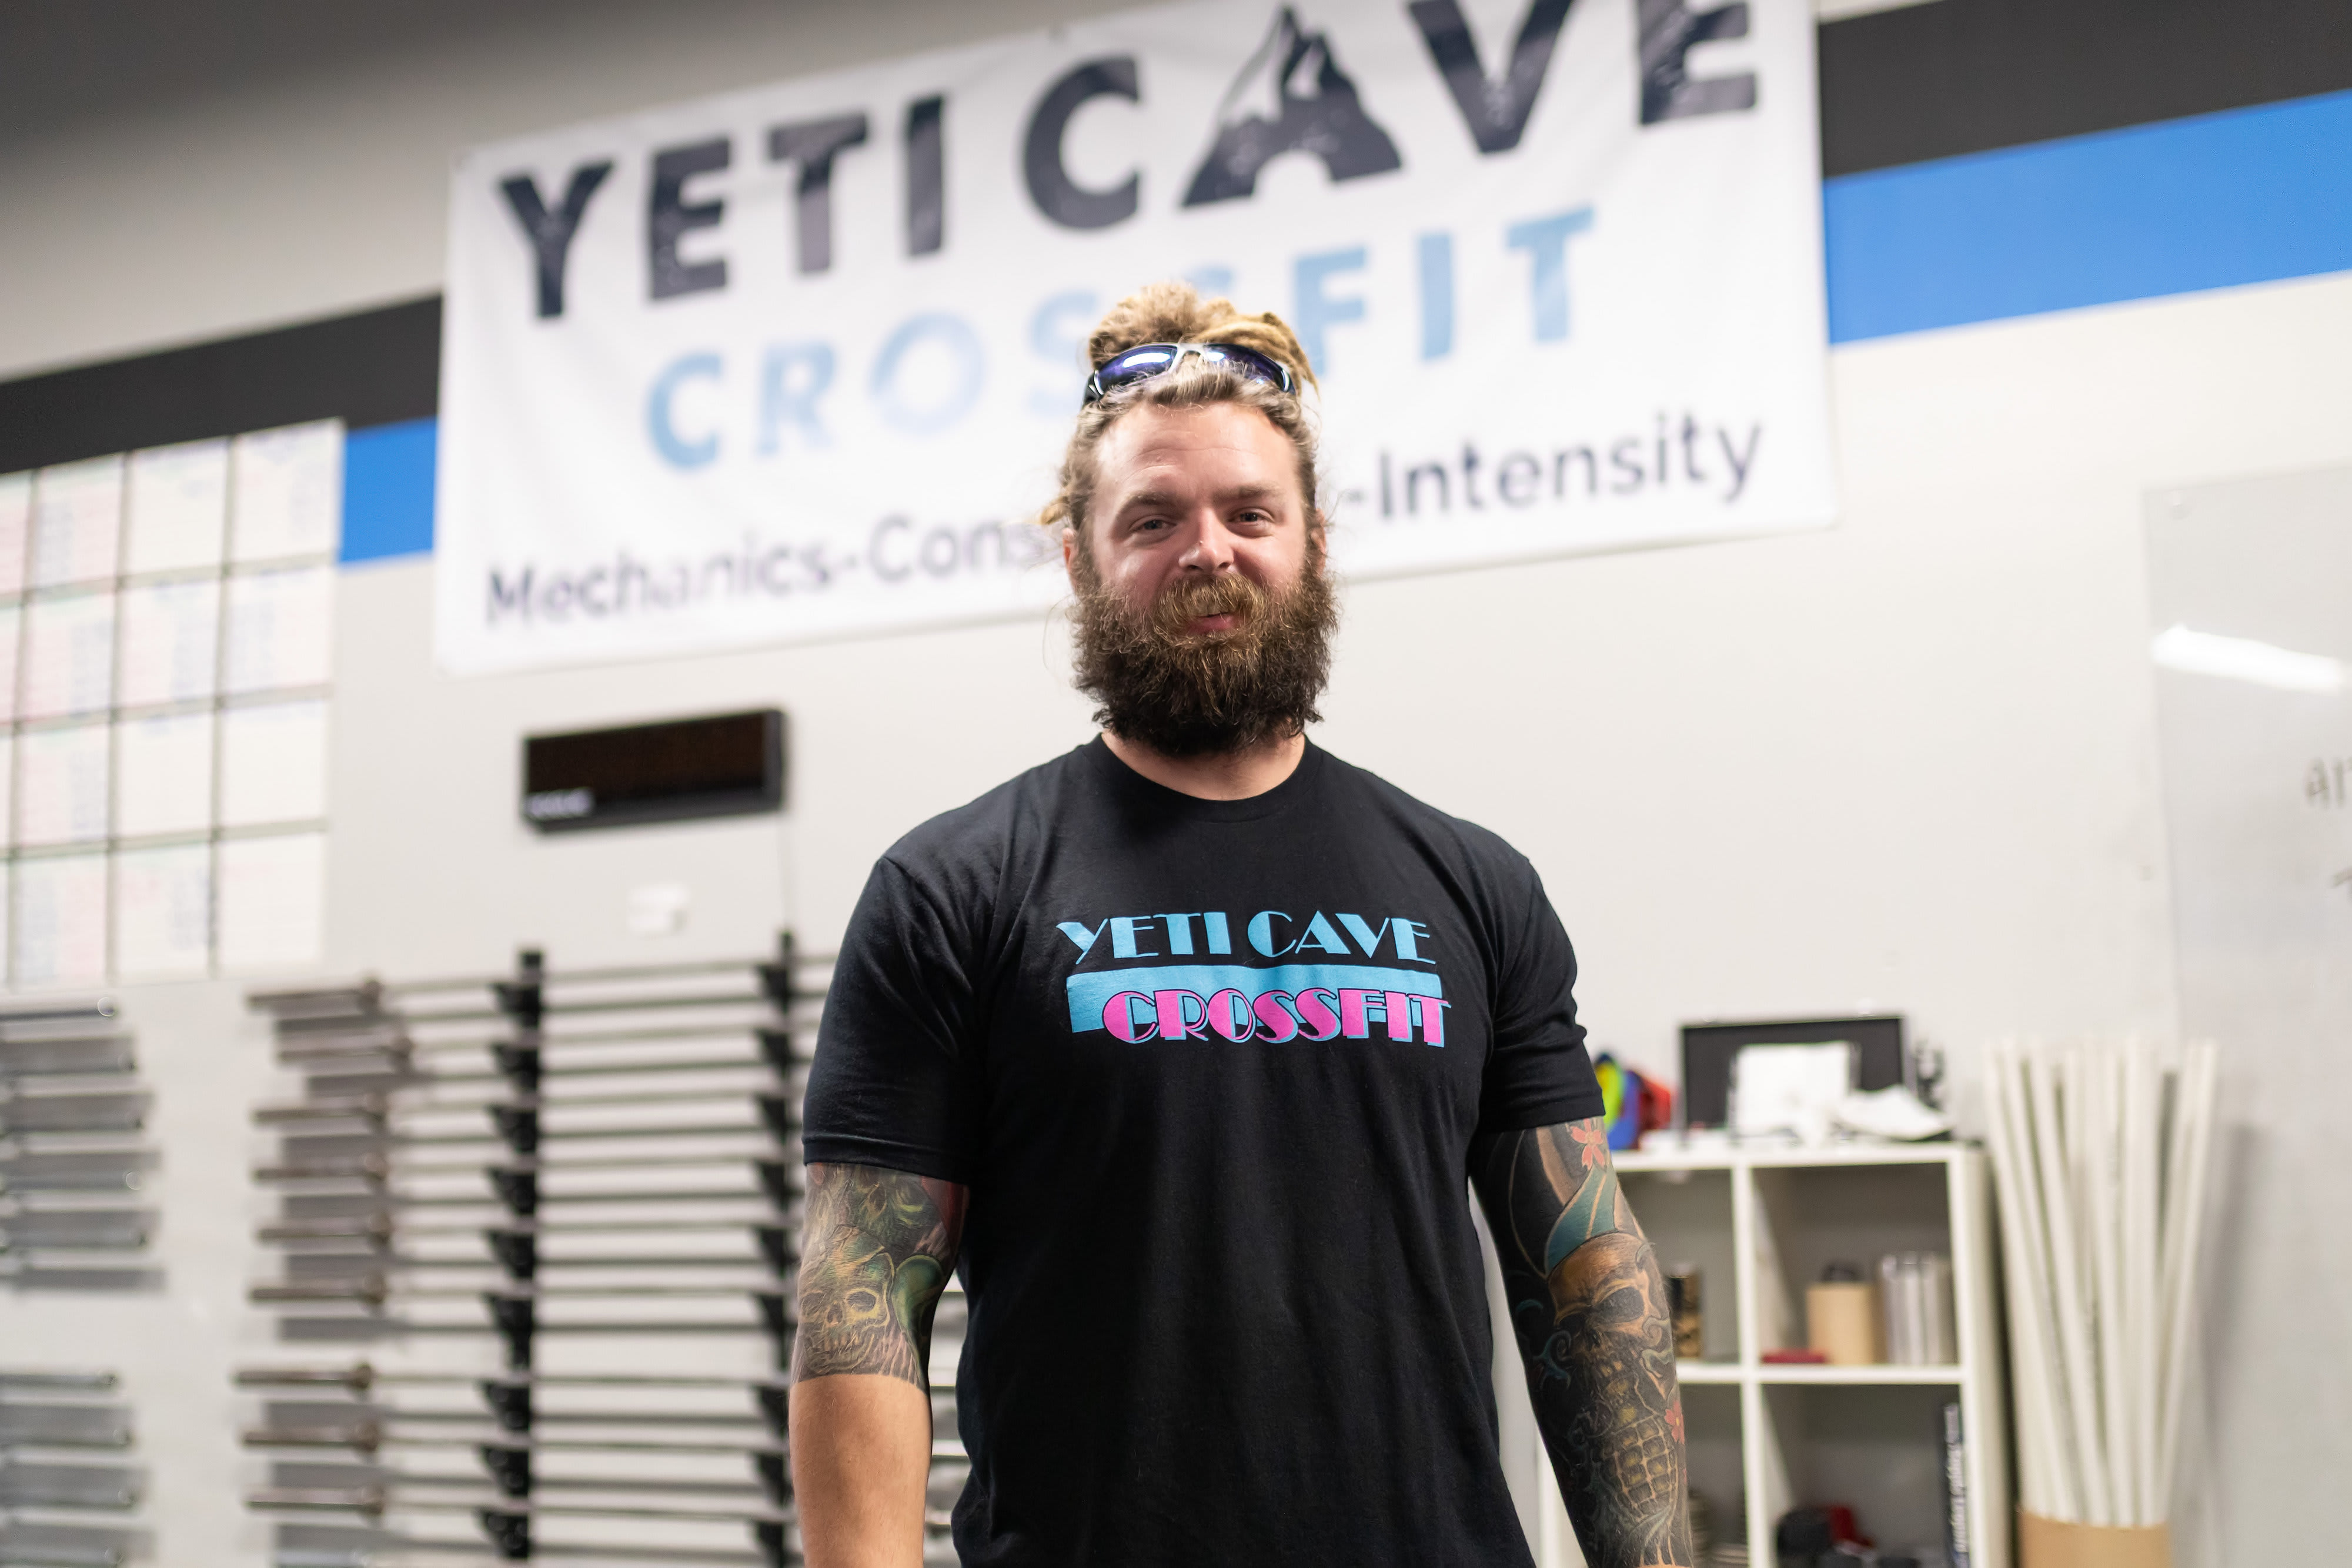 Josh Page in Fort Collins - Yeti Cave CrossFit